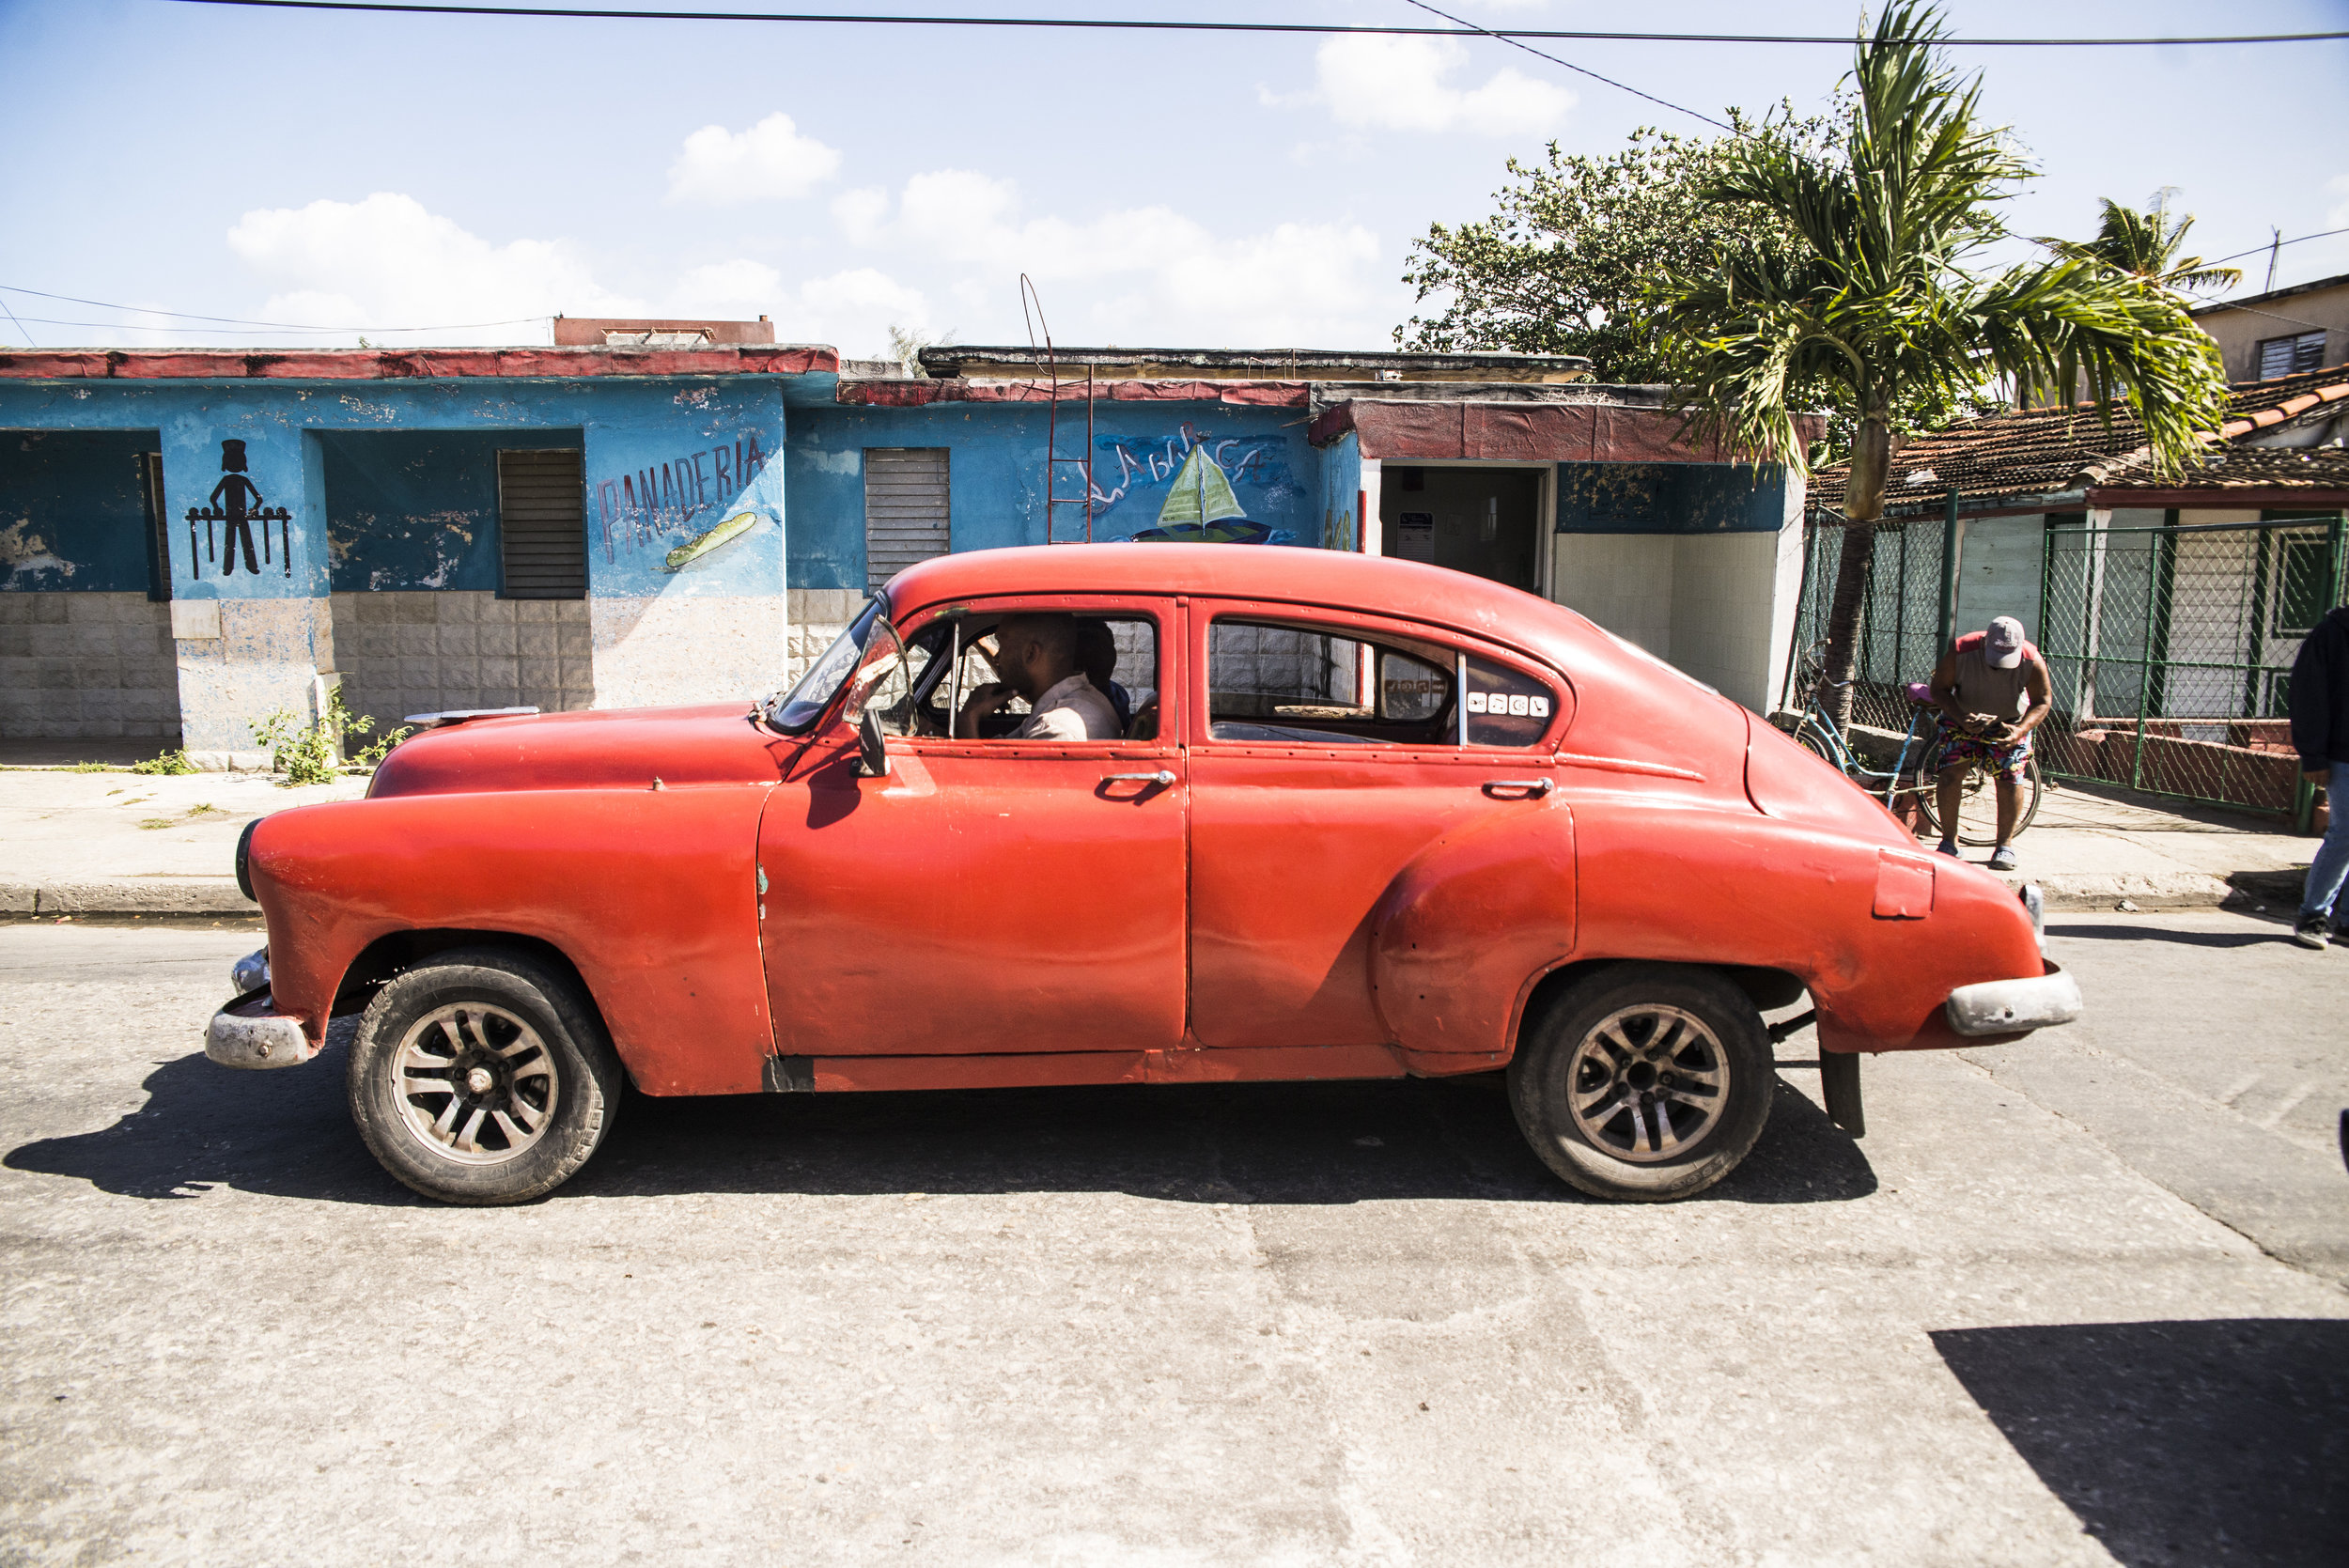 Cuba_Sanuk_StayWild_Photo_AdamWalker_DSC_05510.JPG